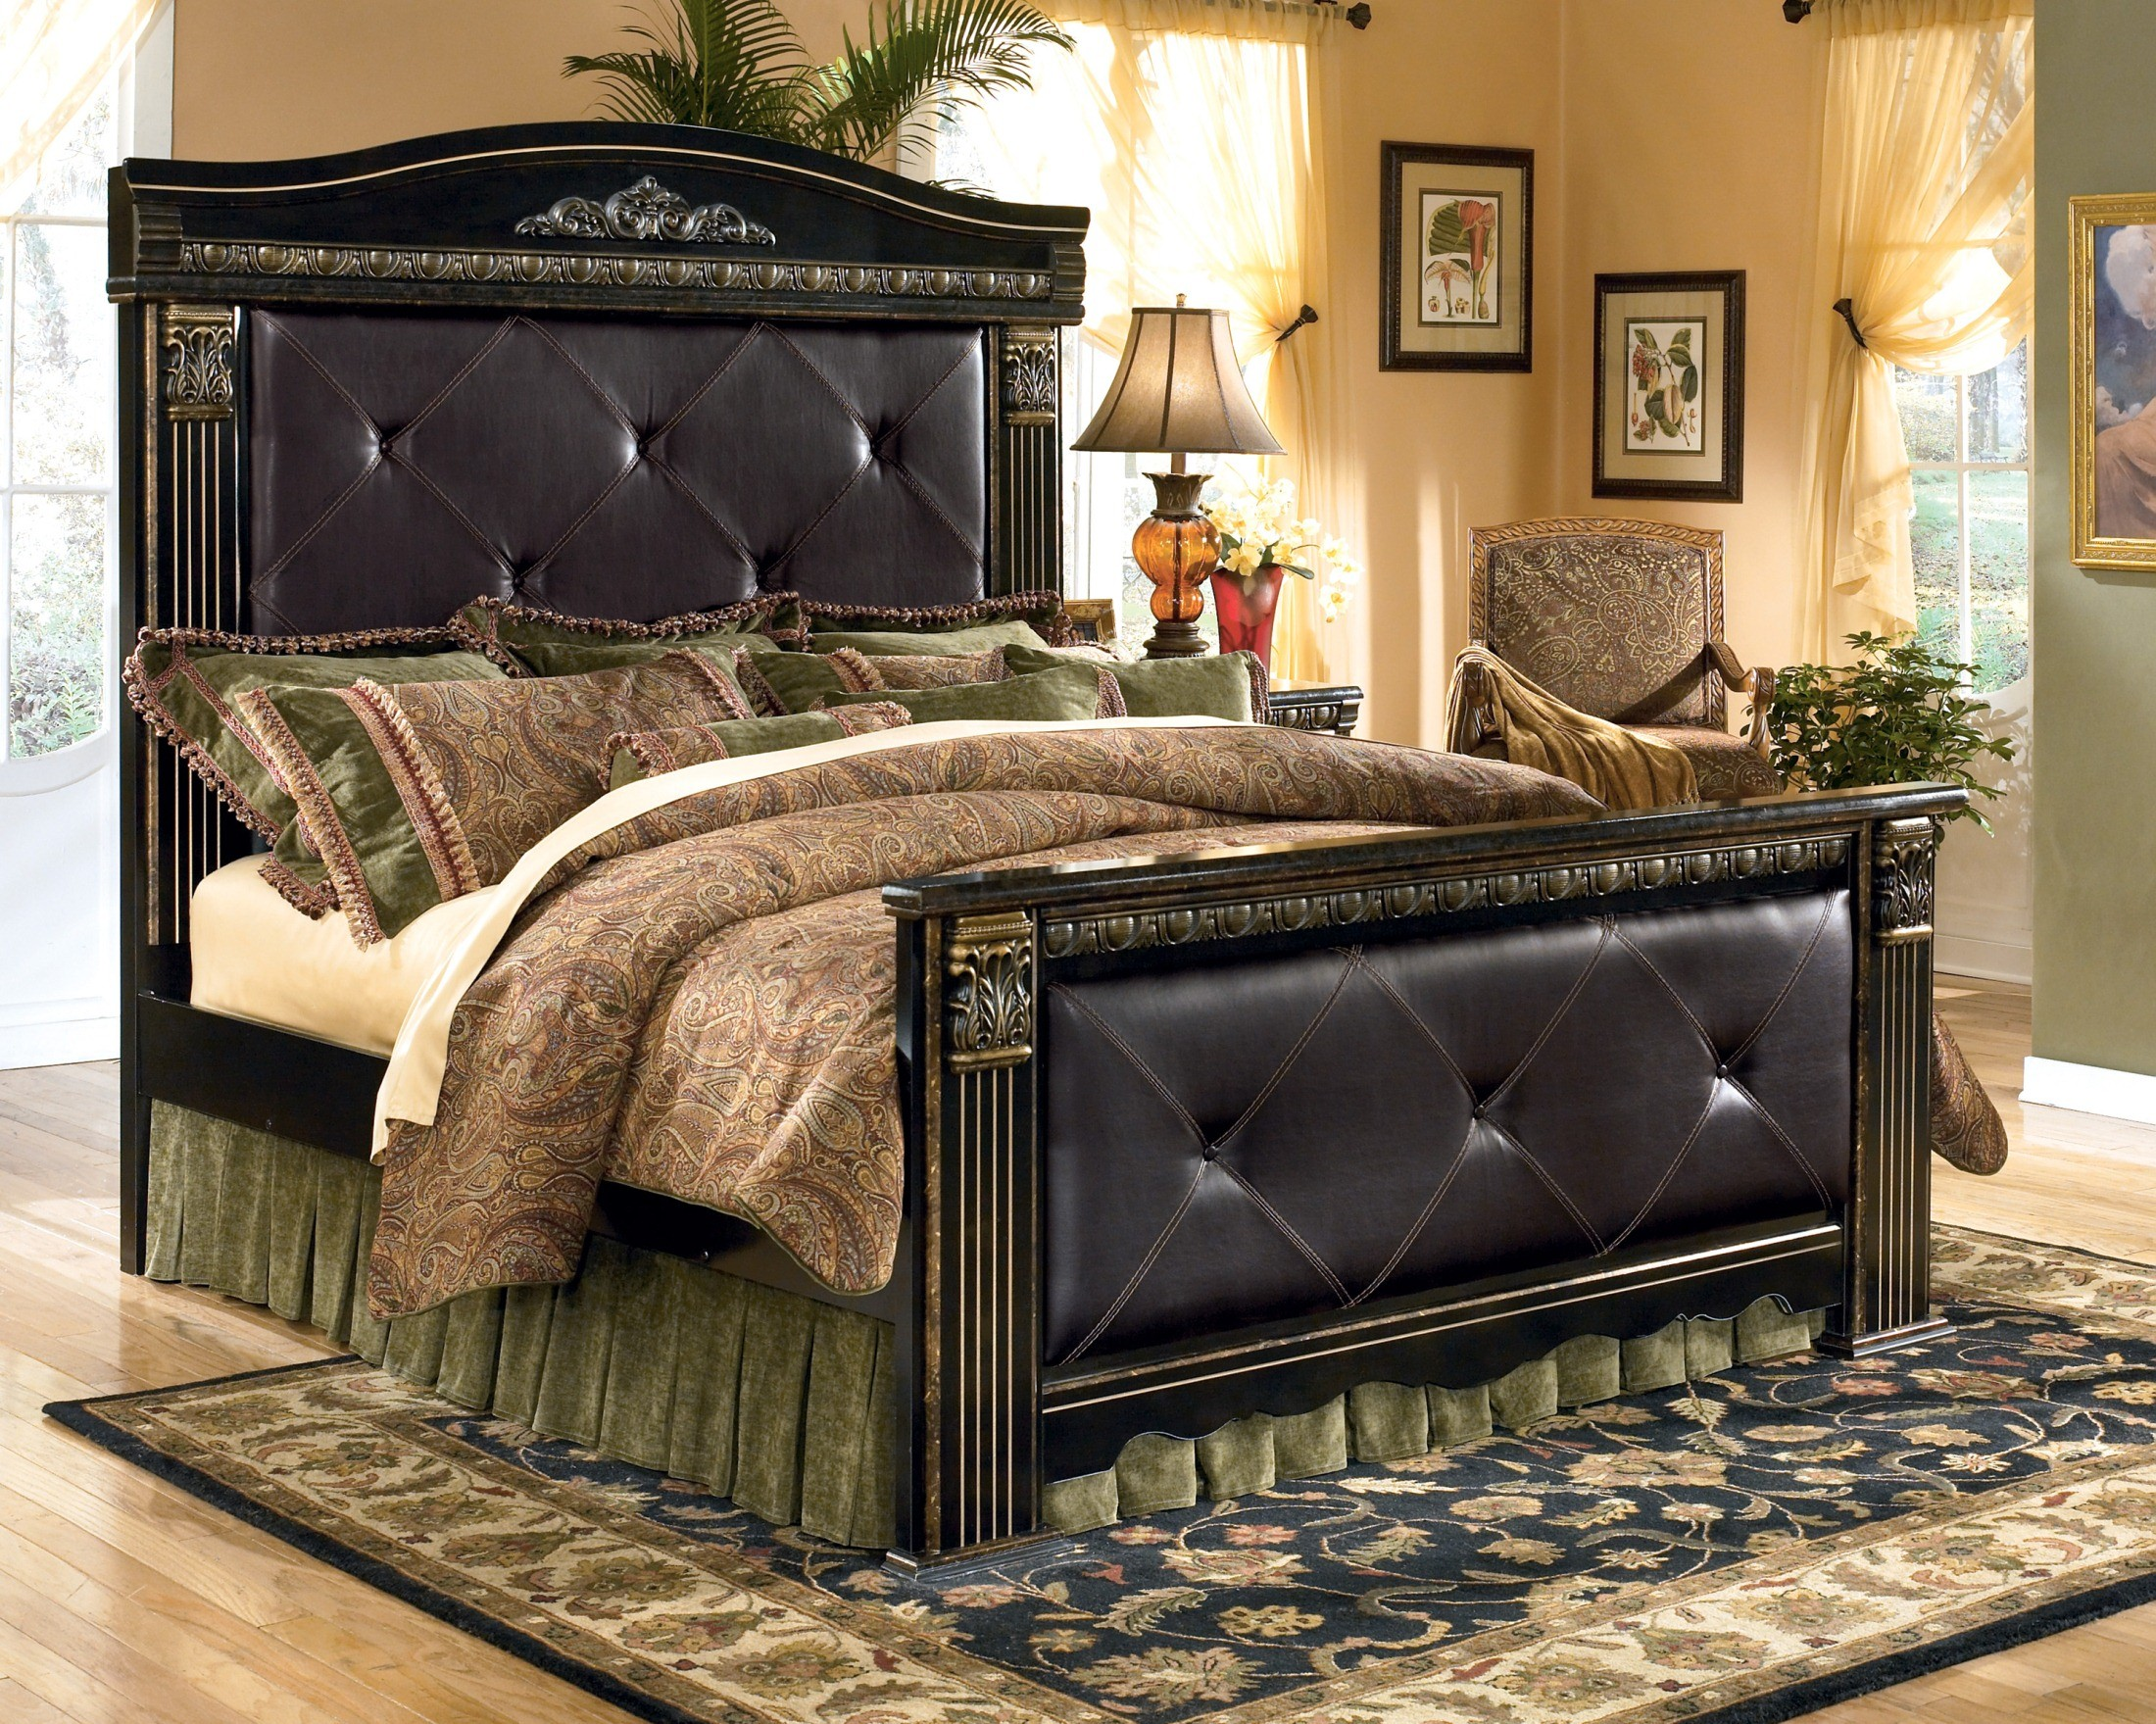 Mansion Bedroom Furniture Coal Creek Queen Mansion Bed From Ashley B175 57 54 98 61